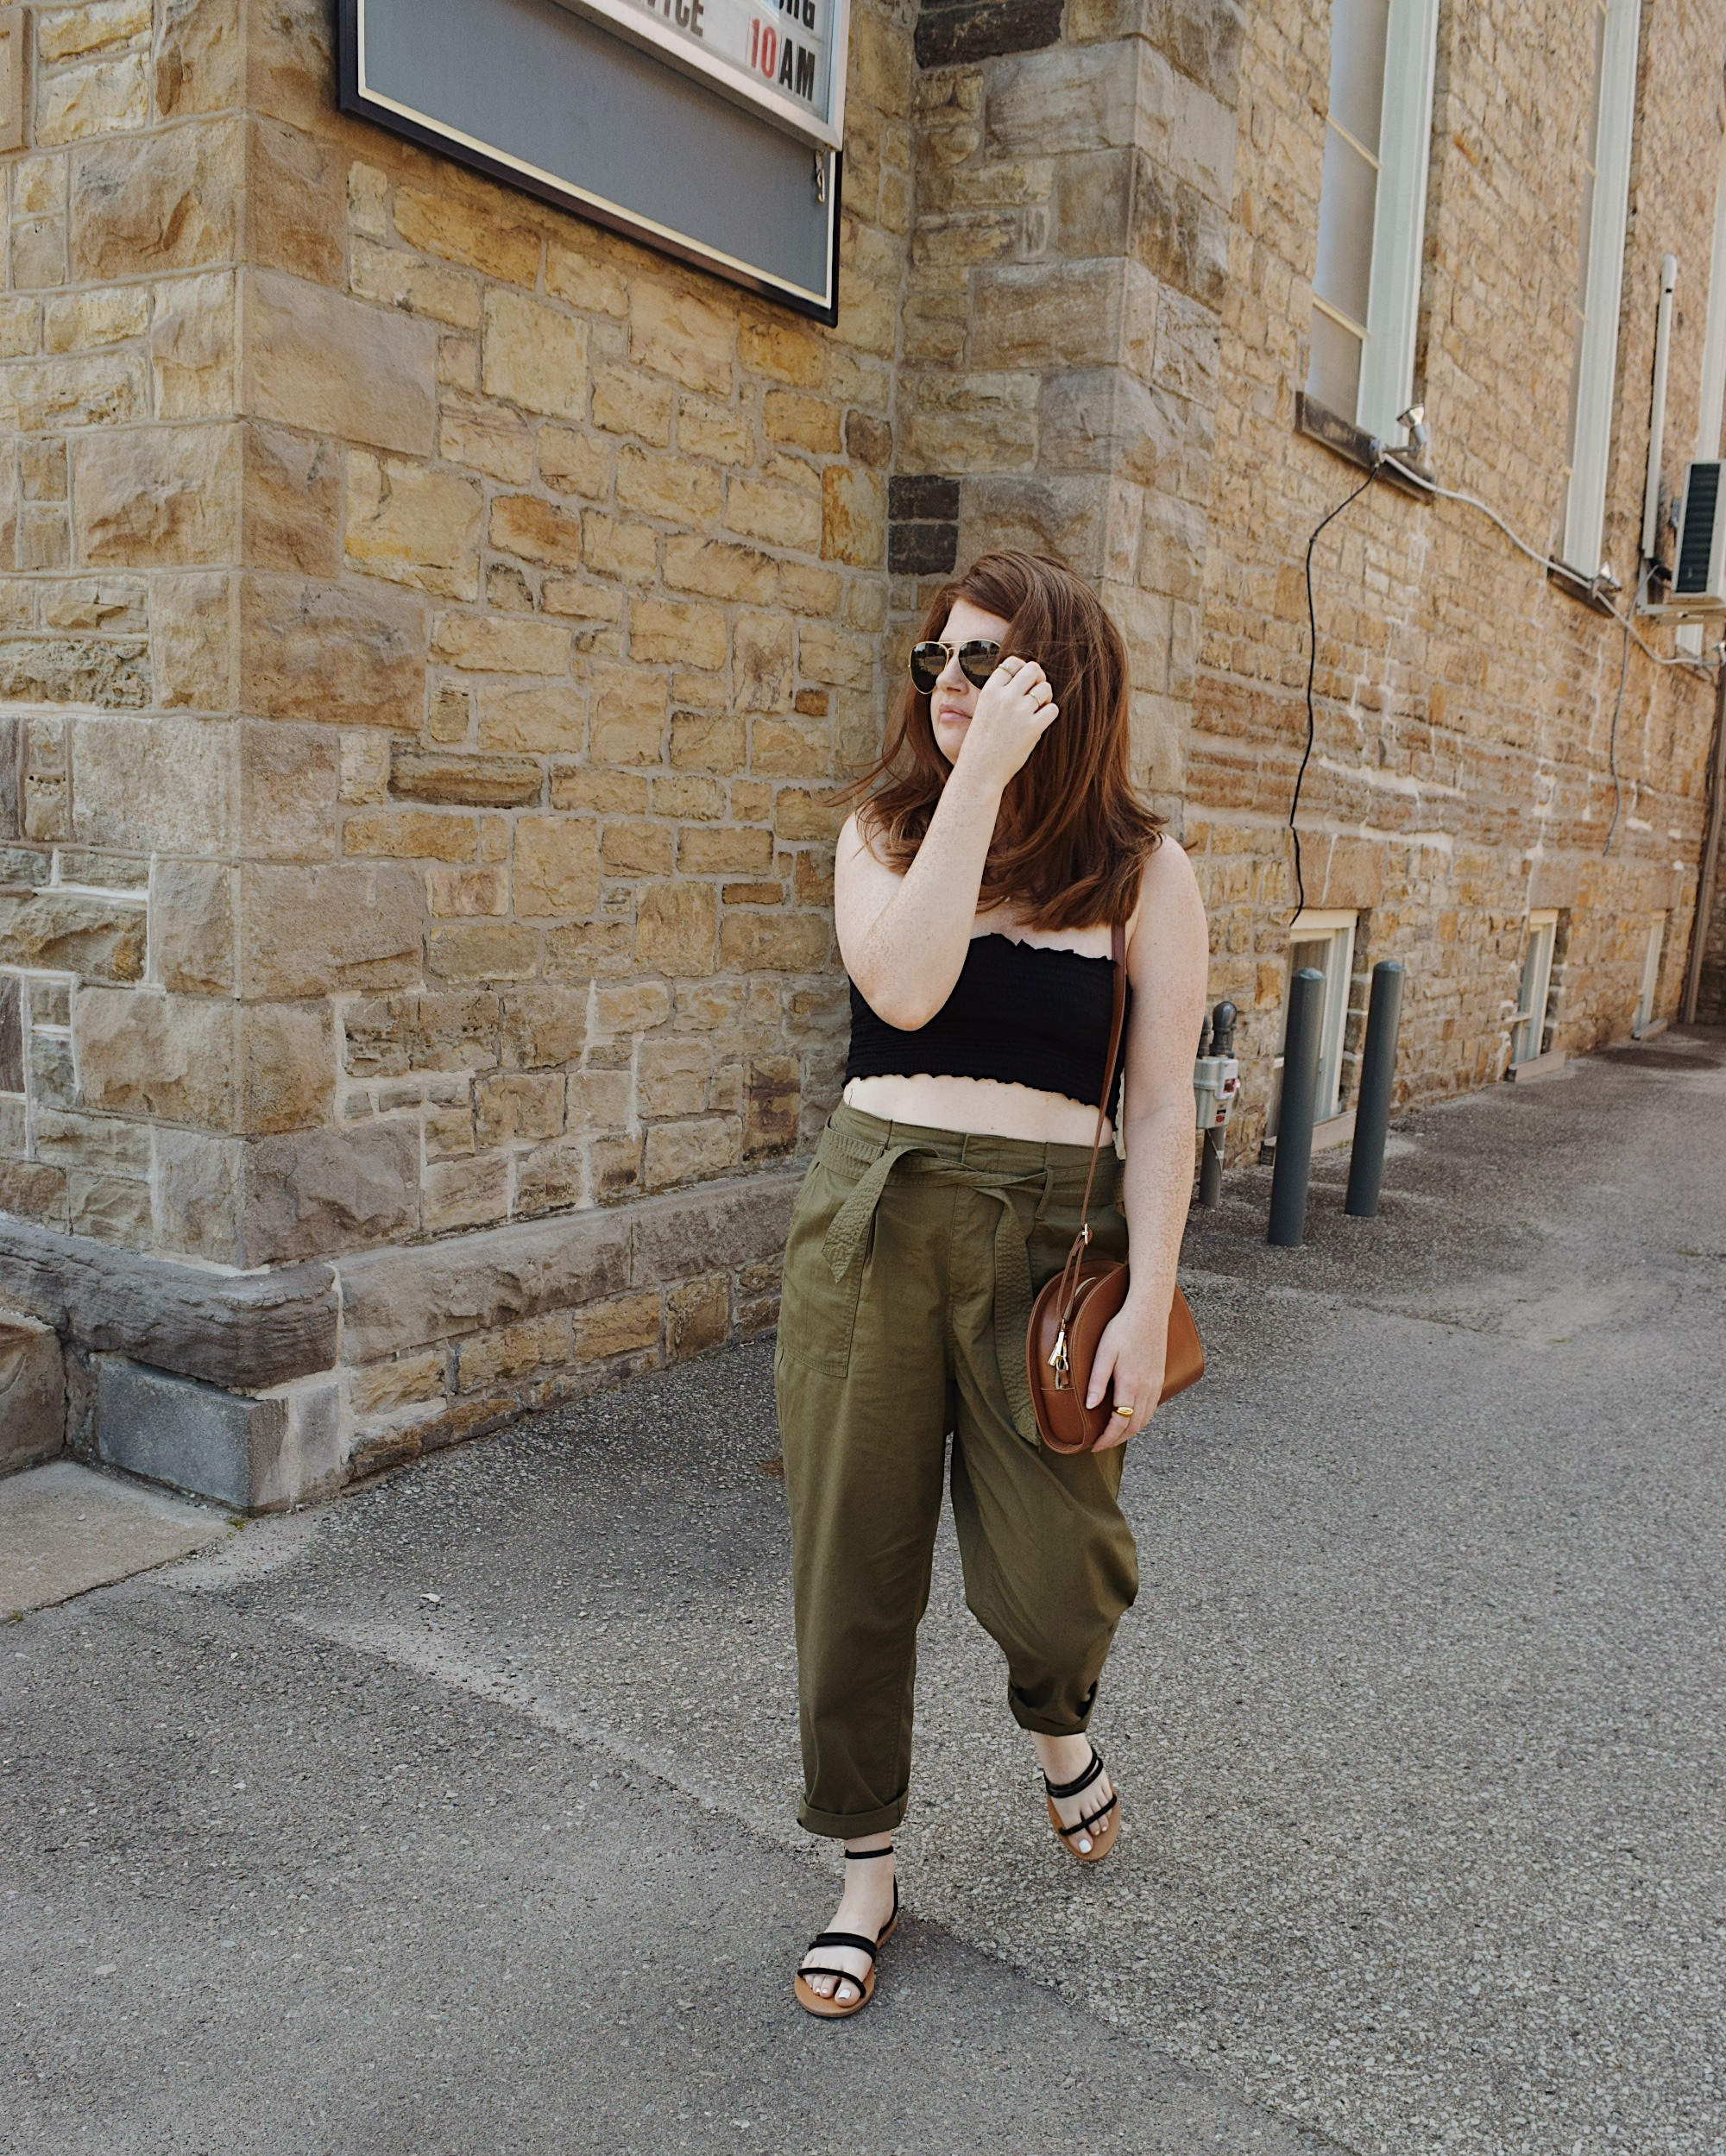 Wearing green high waisted pants from New York and company